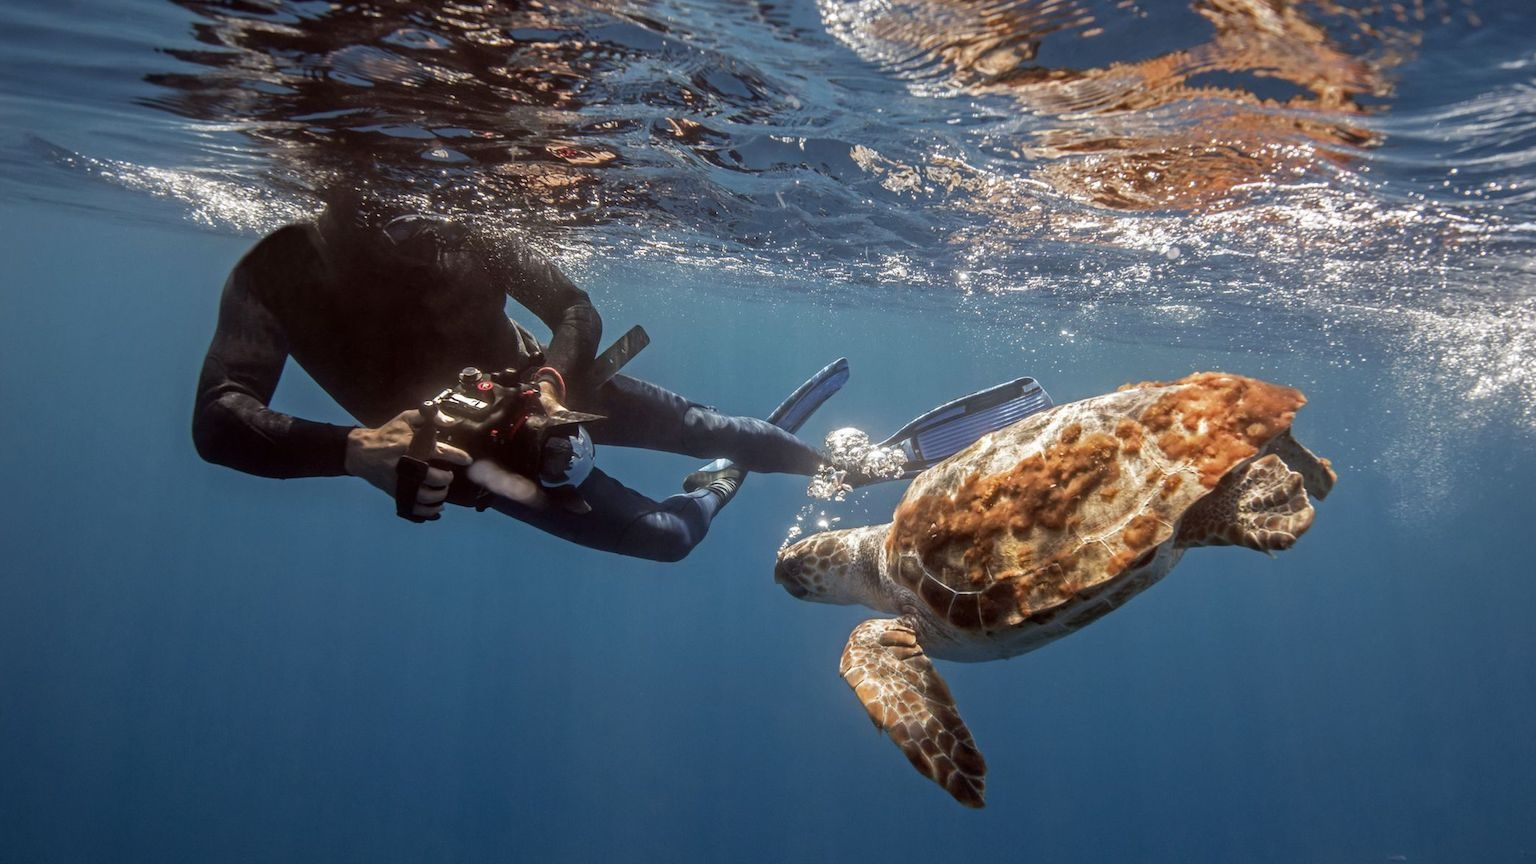 A scuba diver taking a photo of a turtle